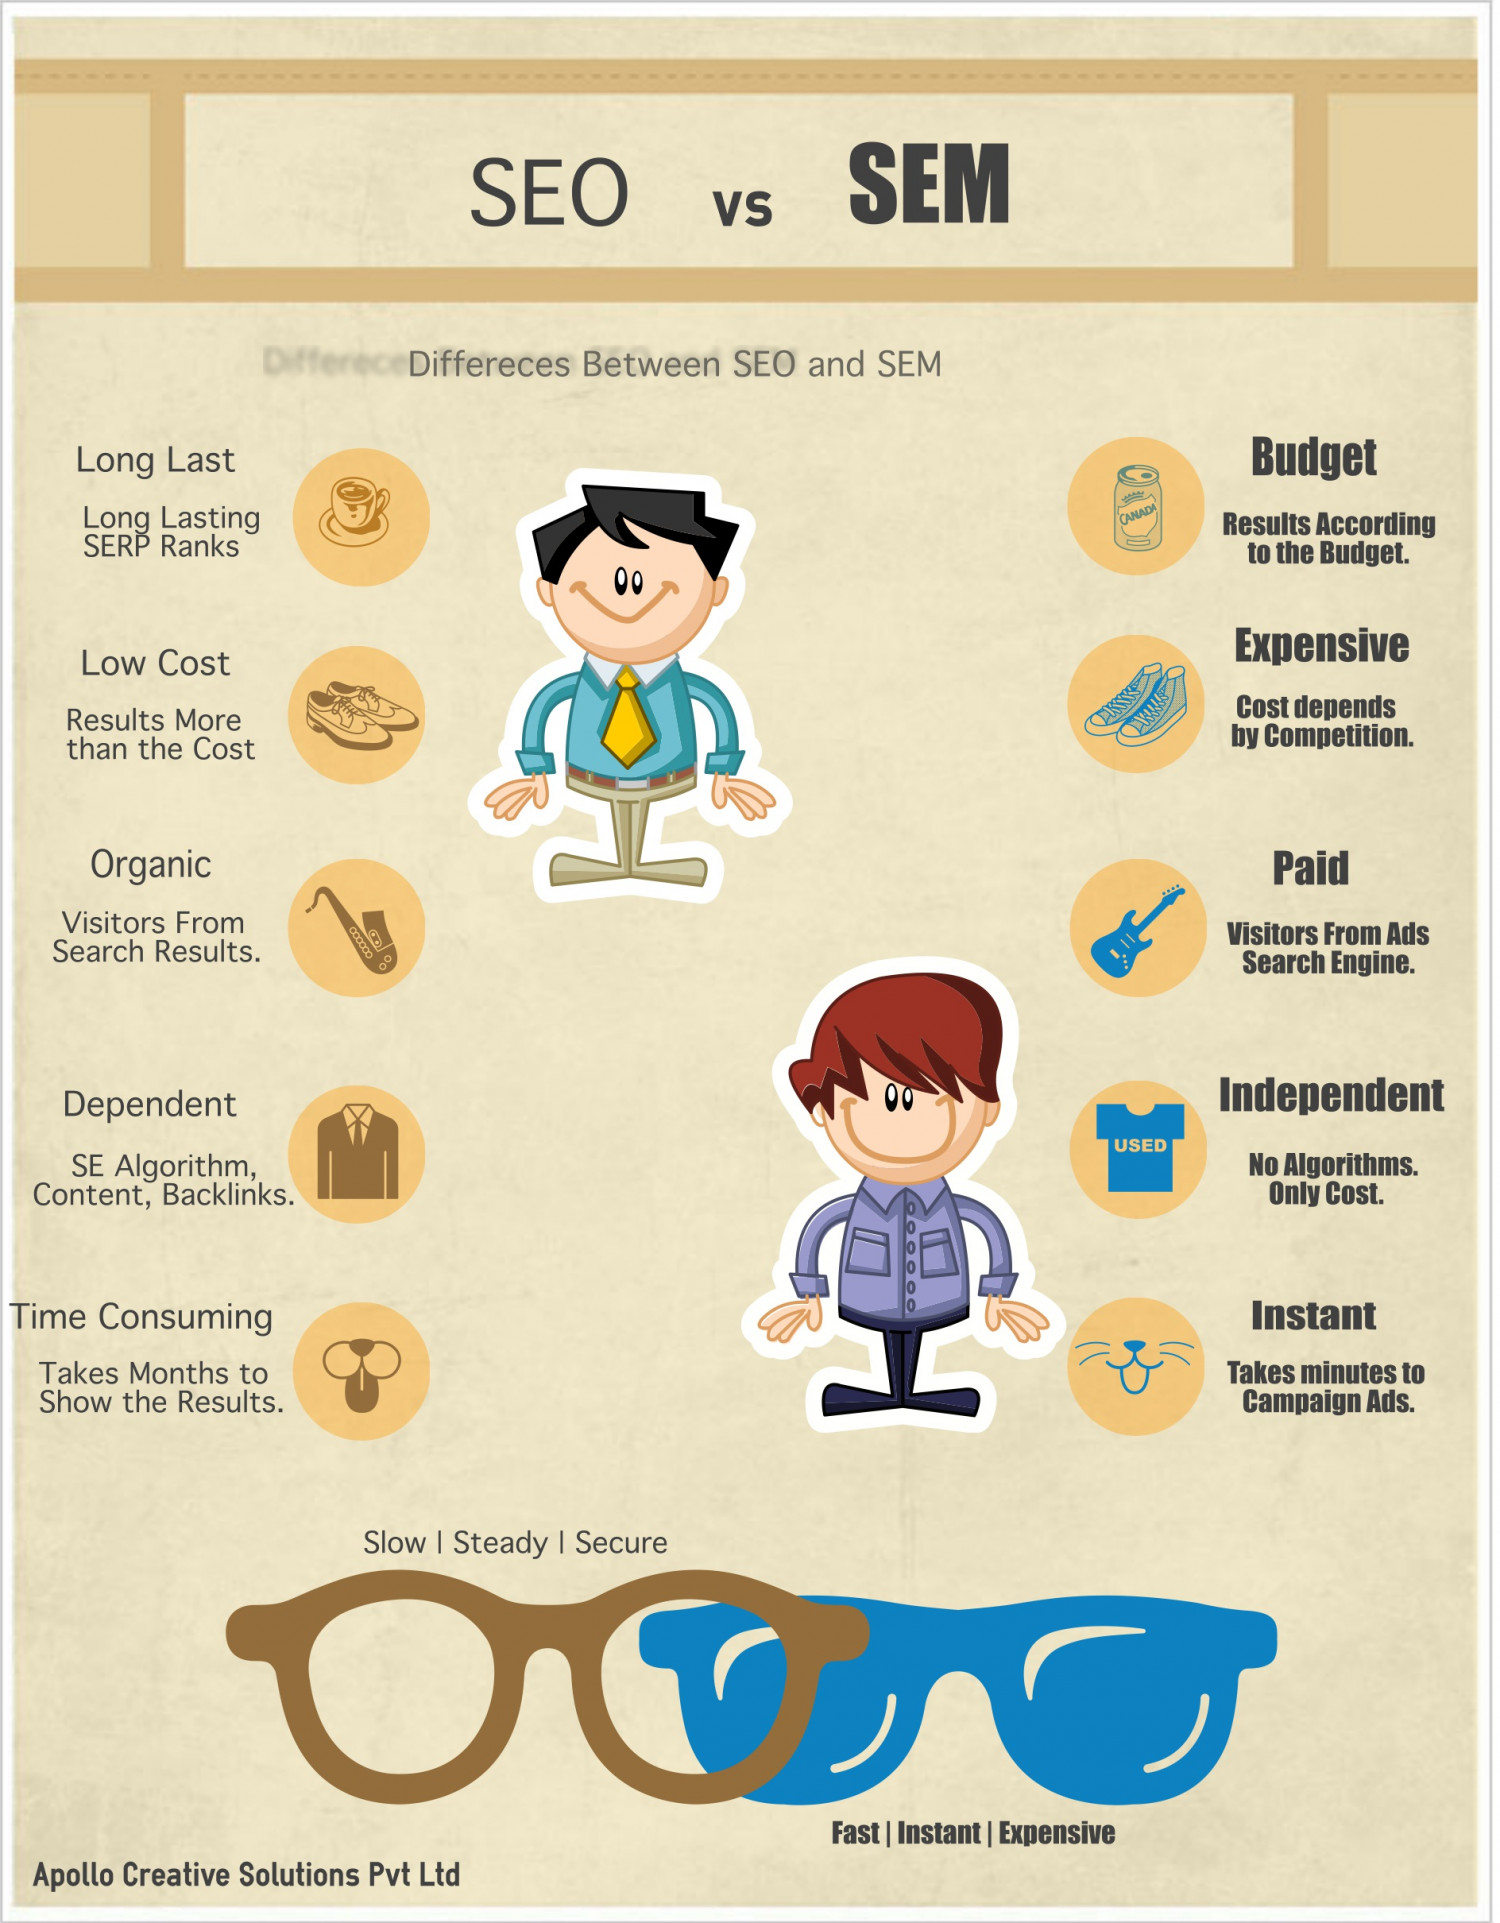 SEO vs SEM Difference Infographic